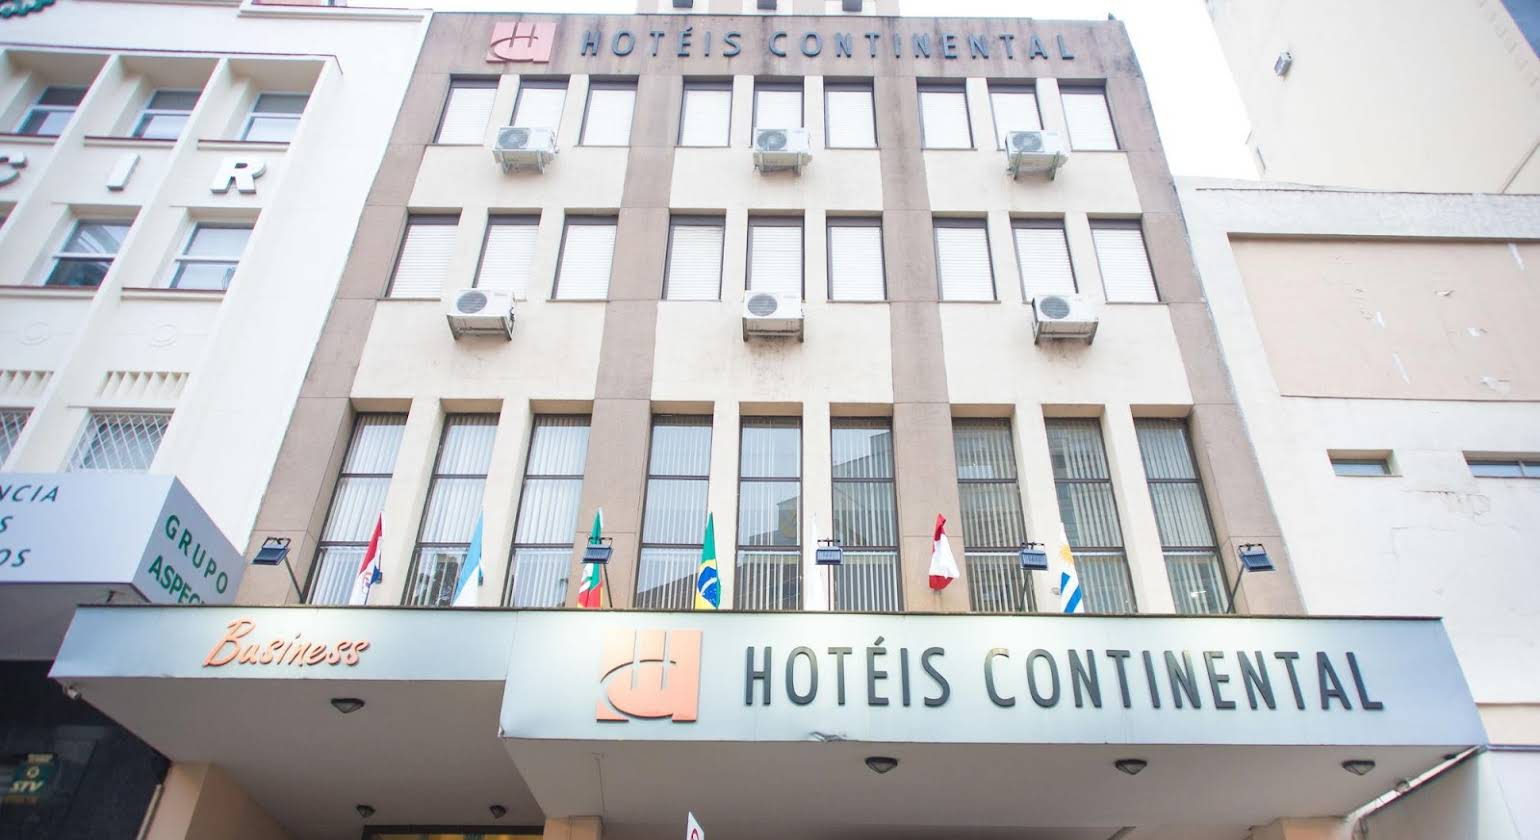 Hotel Continental Business